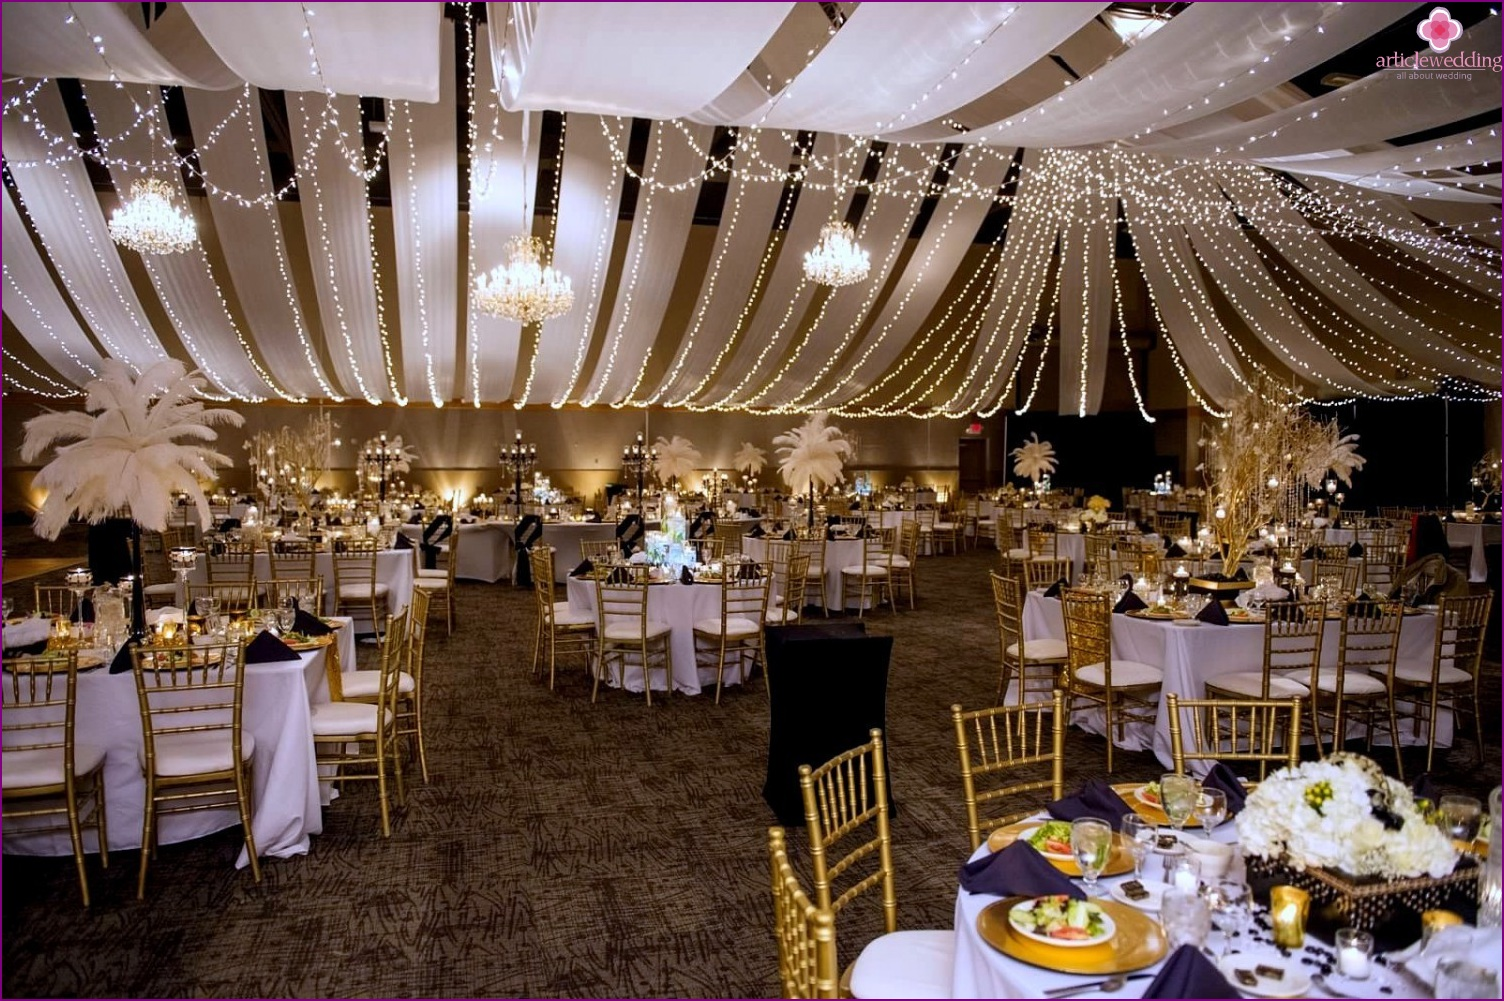 The Great Gatsby Style Wedding